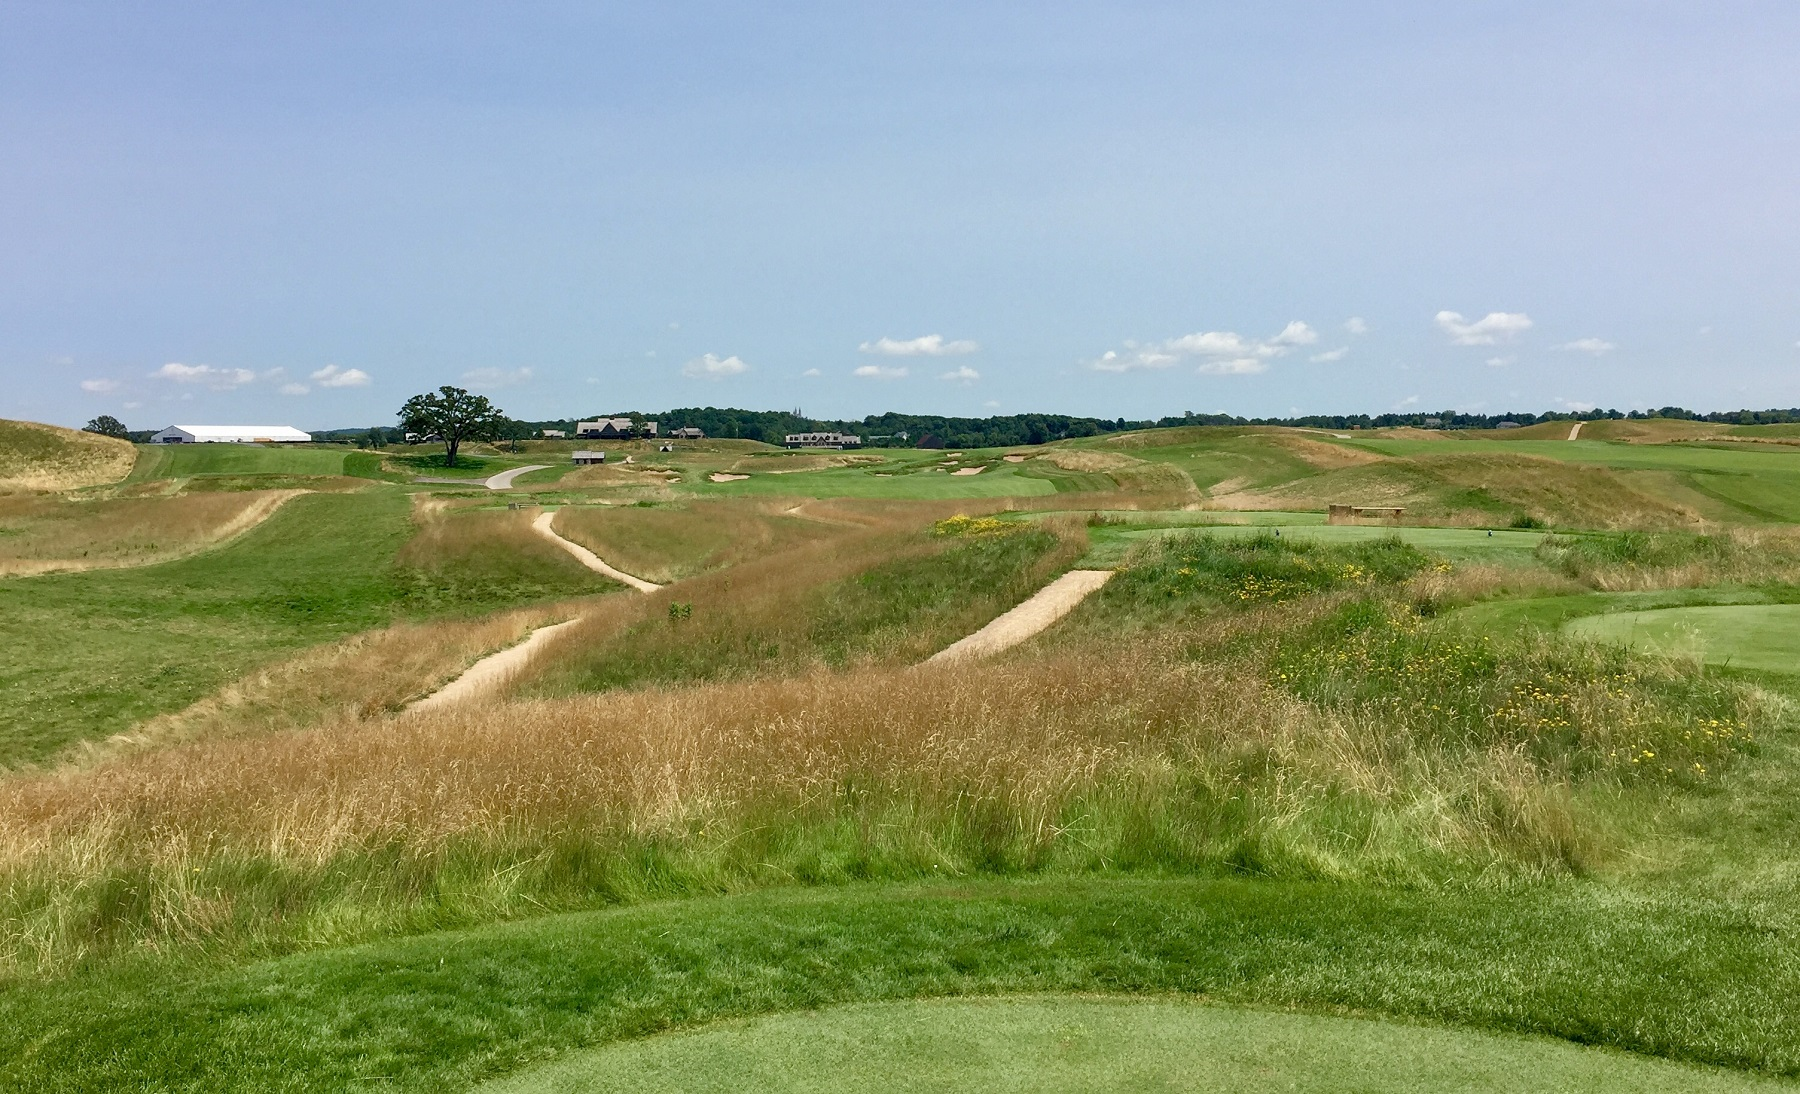 No one's denying the awesomeness of a 379-yard three-wood, but there's also no denying the 18th tee at Erin Hills is a launchpad of sorts.